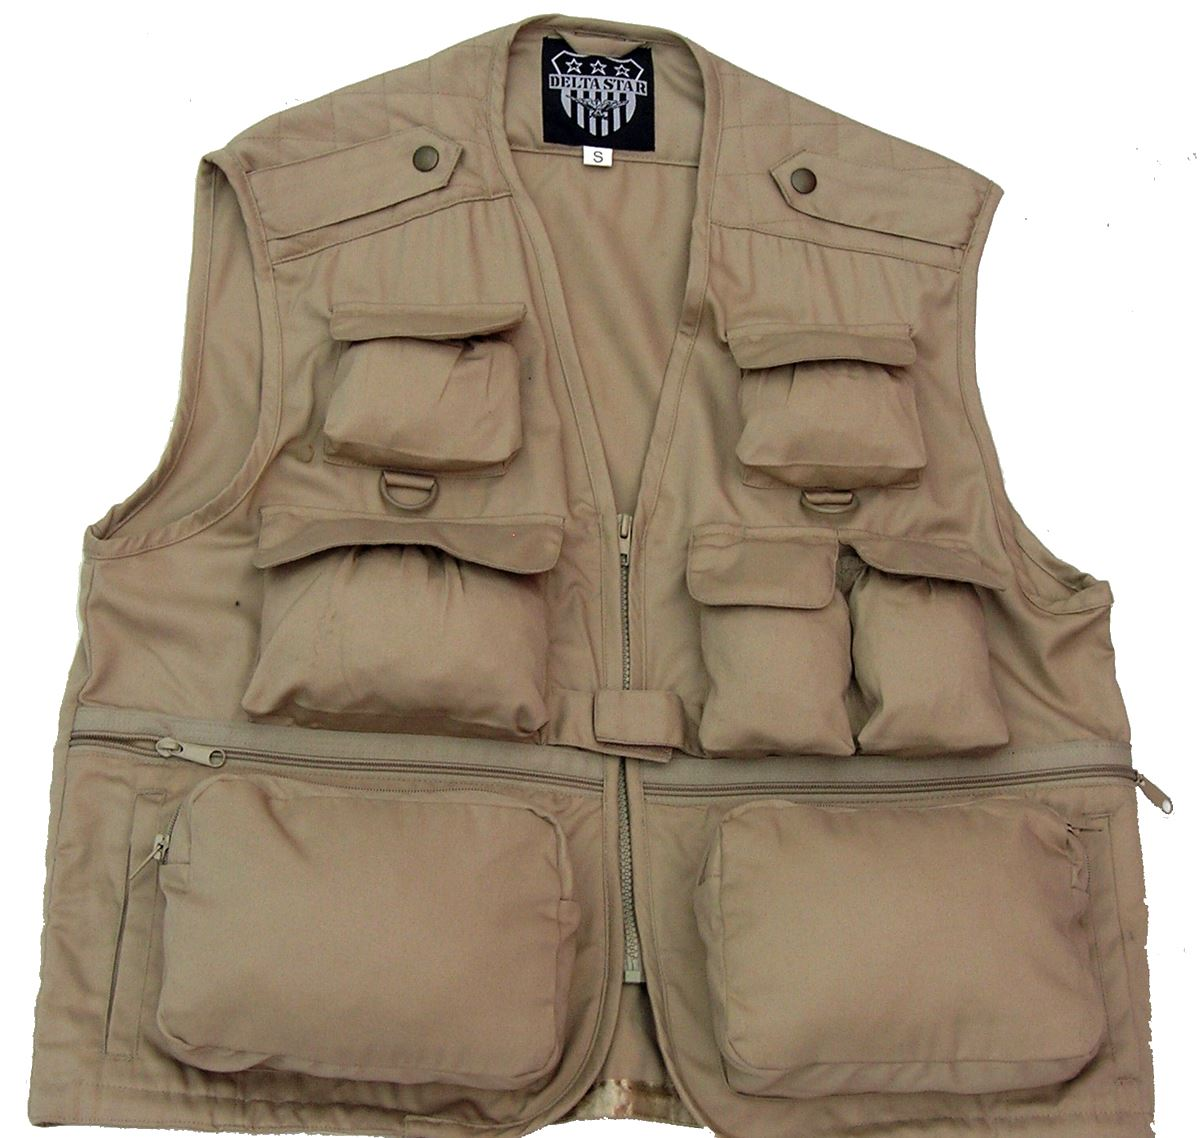 MULTI POCKET WAISTCOAT FISHING VEST OUTDOOR HUNTING SHOOTING AIRSOFT GILET